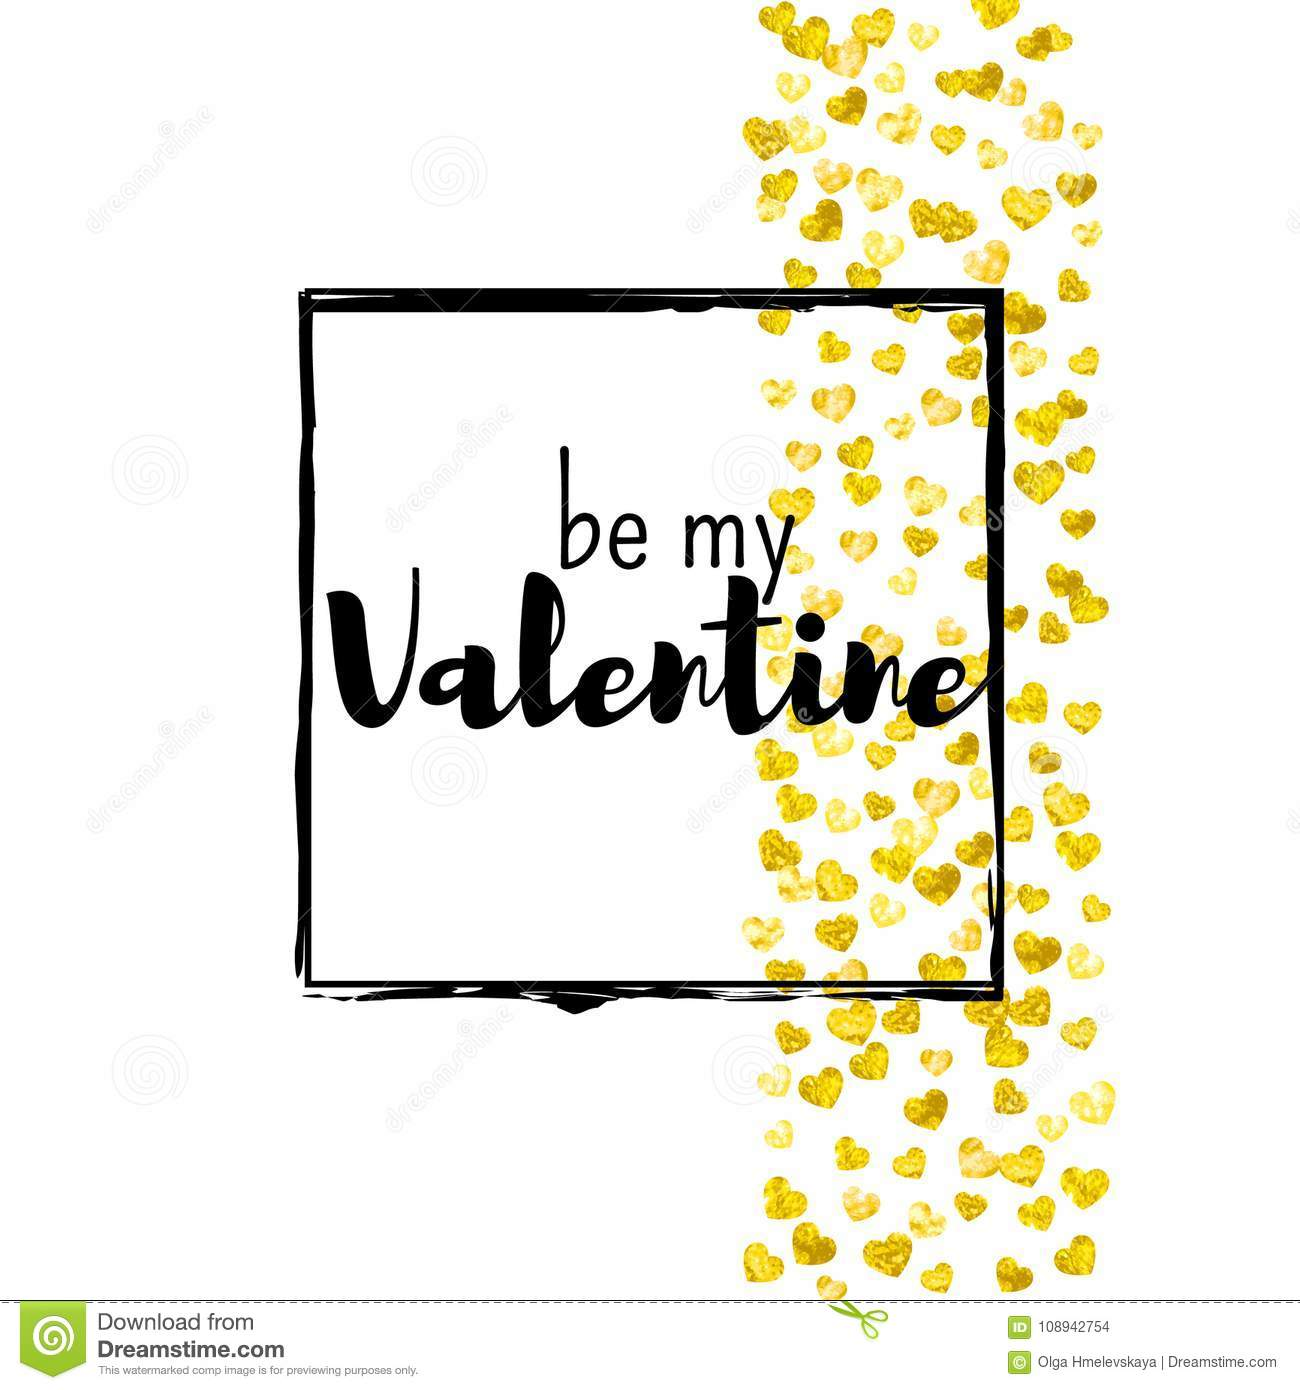 Valentines Day Card With Gold Glitter Hearts February 14th Vector